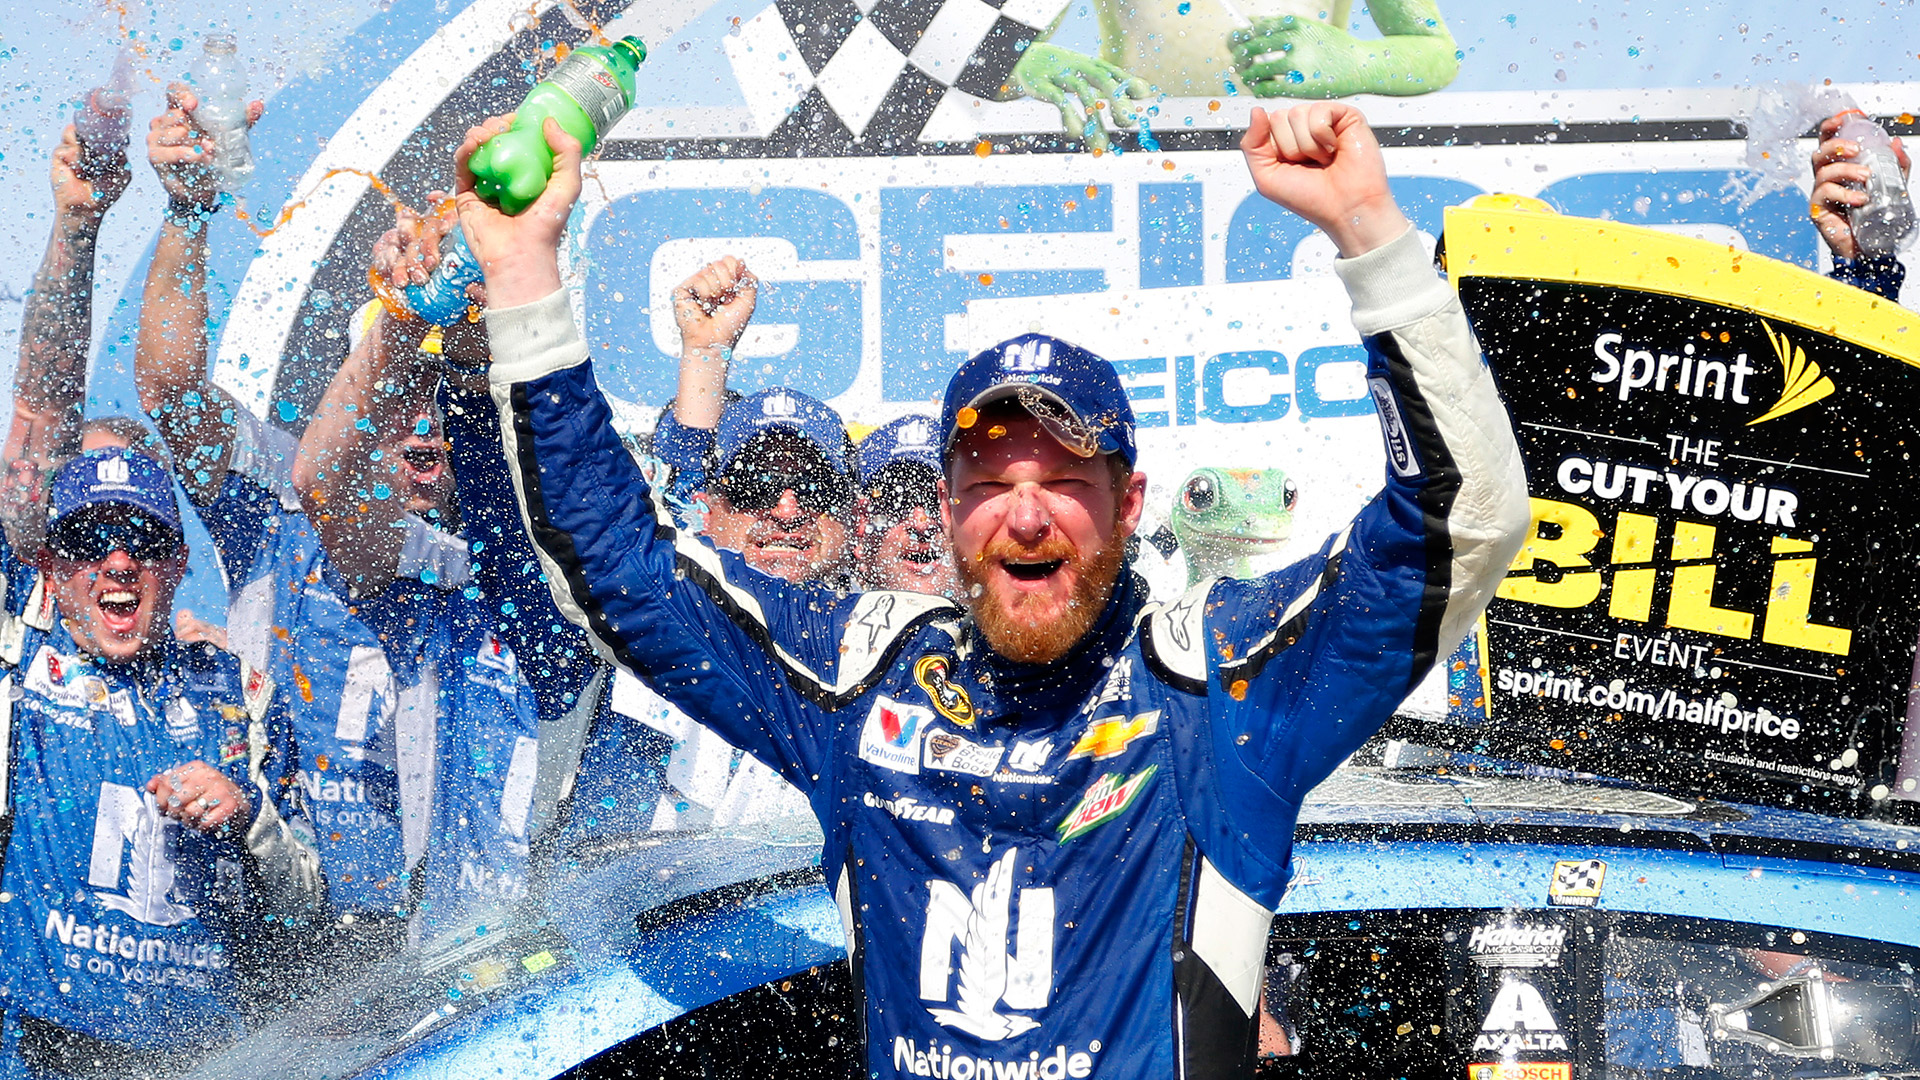 Winners & Losers: Dale Earnhardt Jr. relishes win, spot in Chase